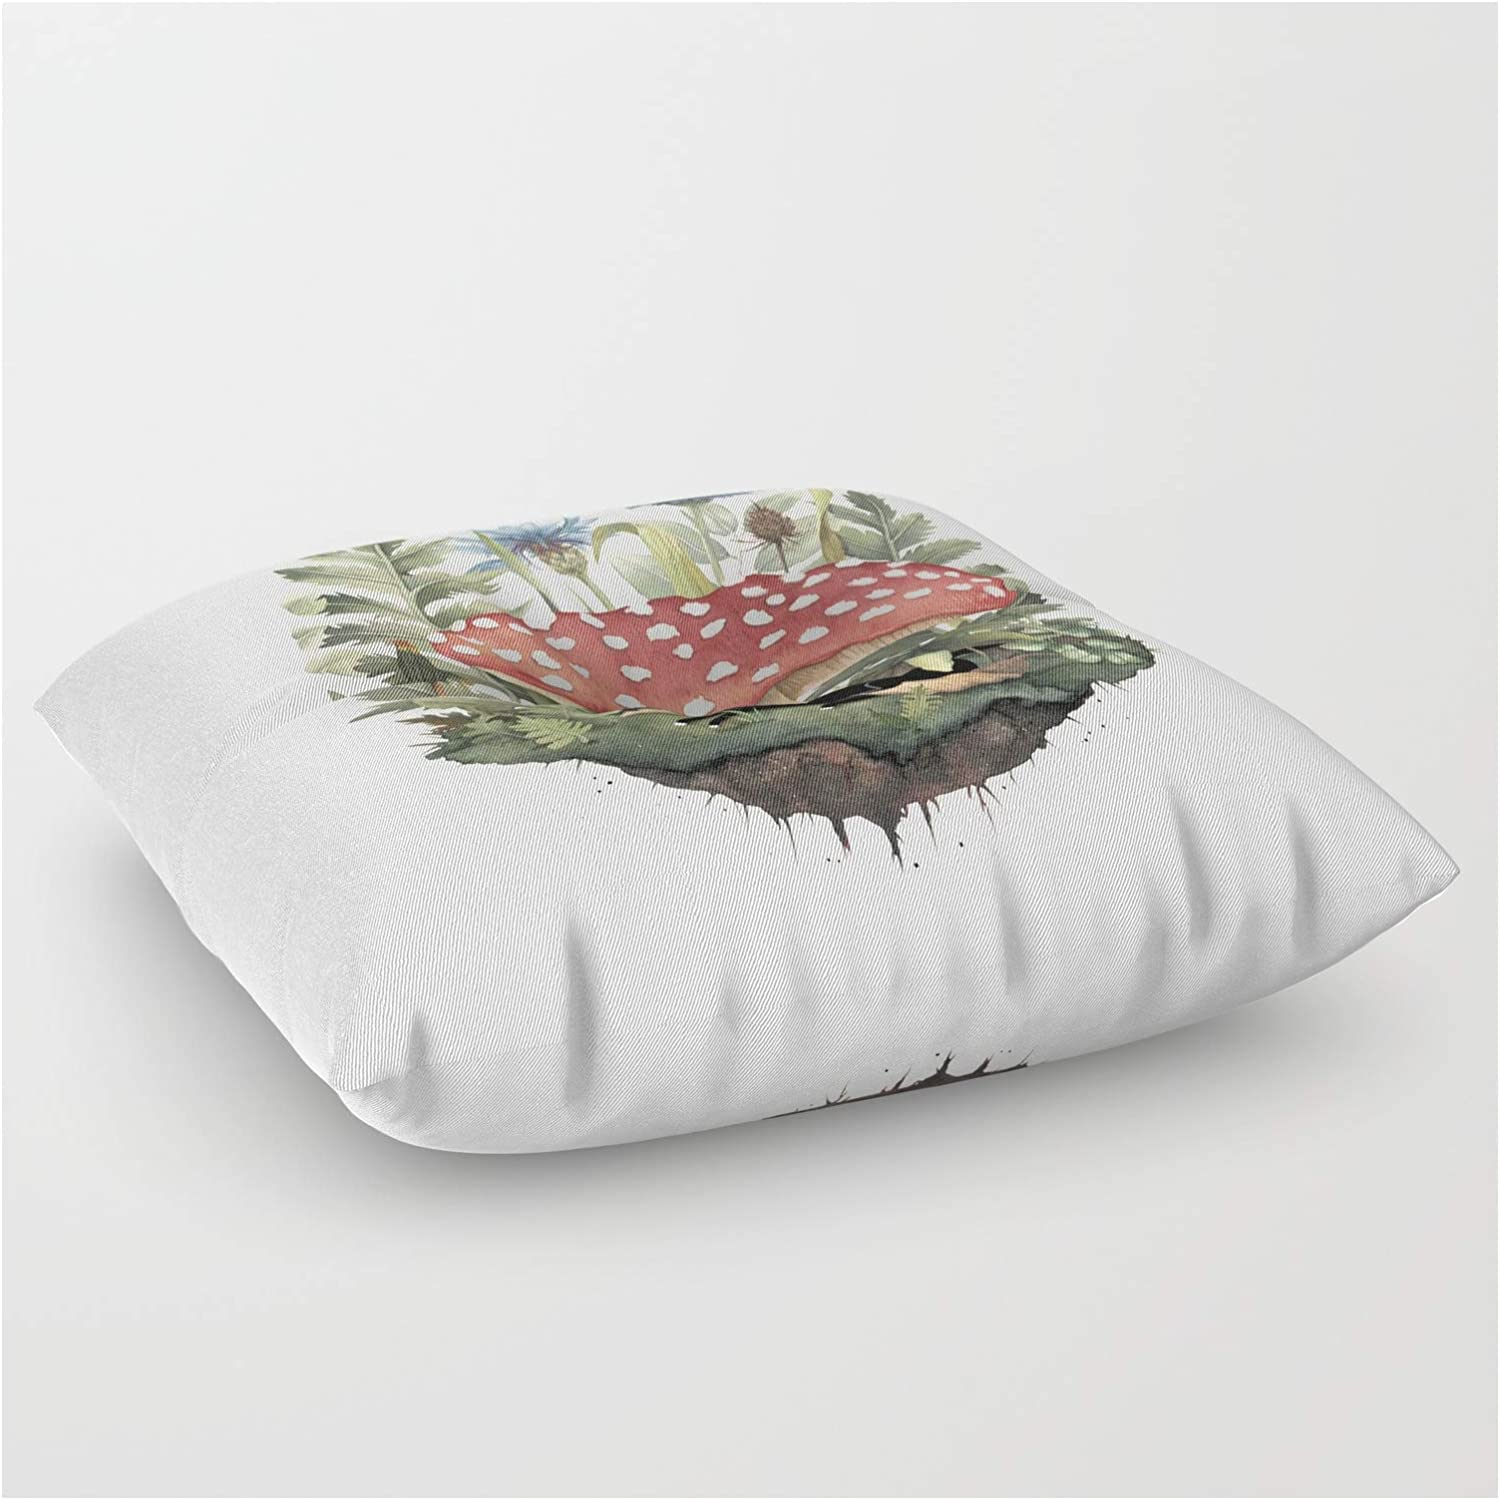 Society6 Tiny Unicorn by Littleclyde Square Max 81% OFF on Floor - Some reservation Pillow